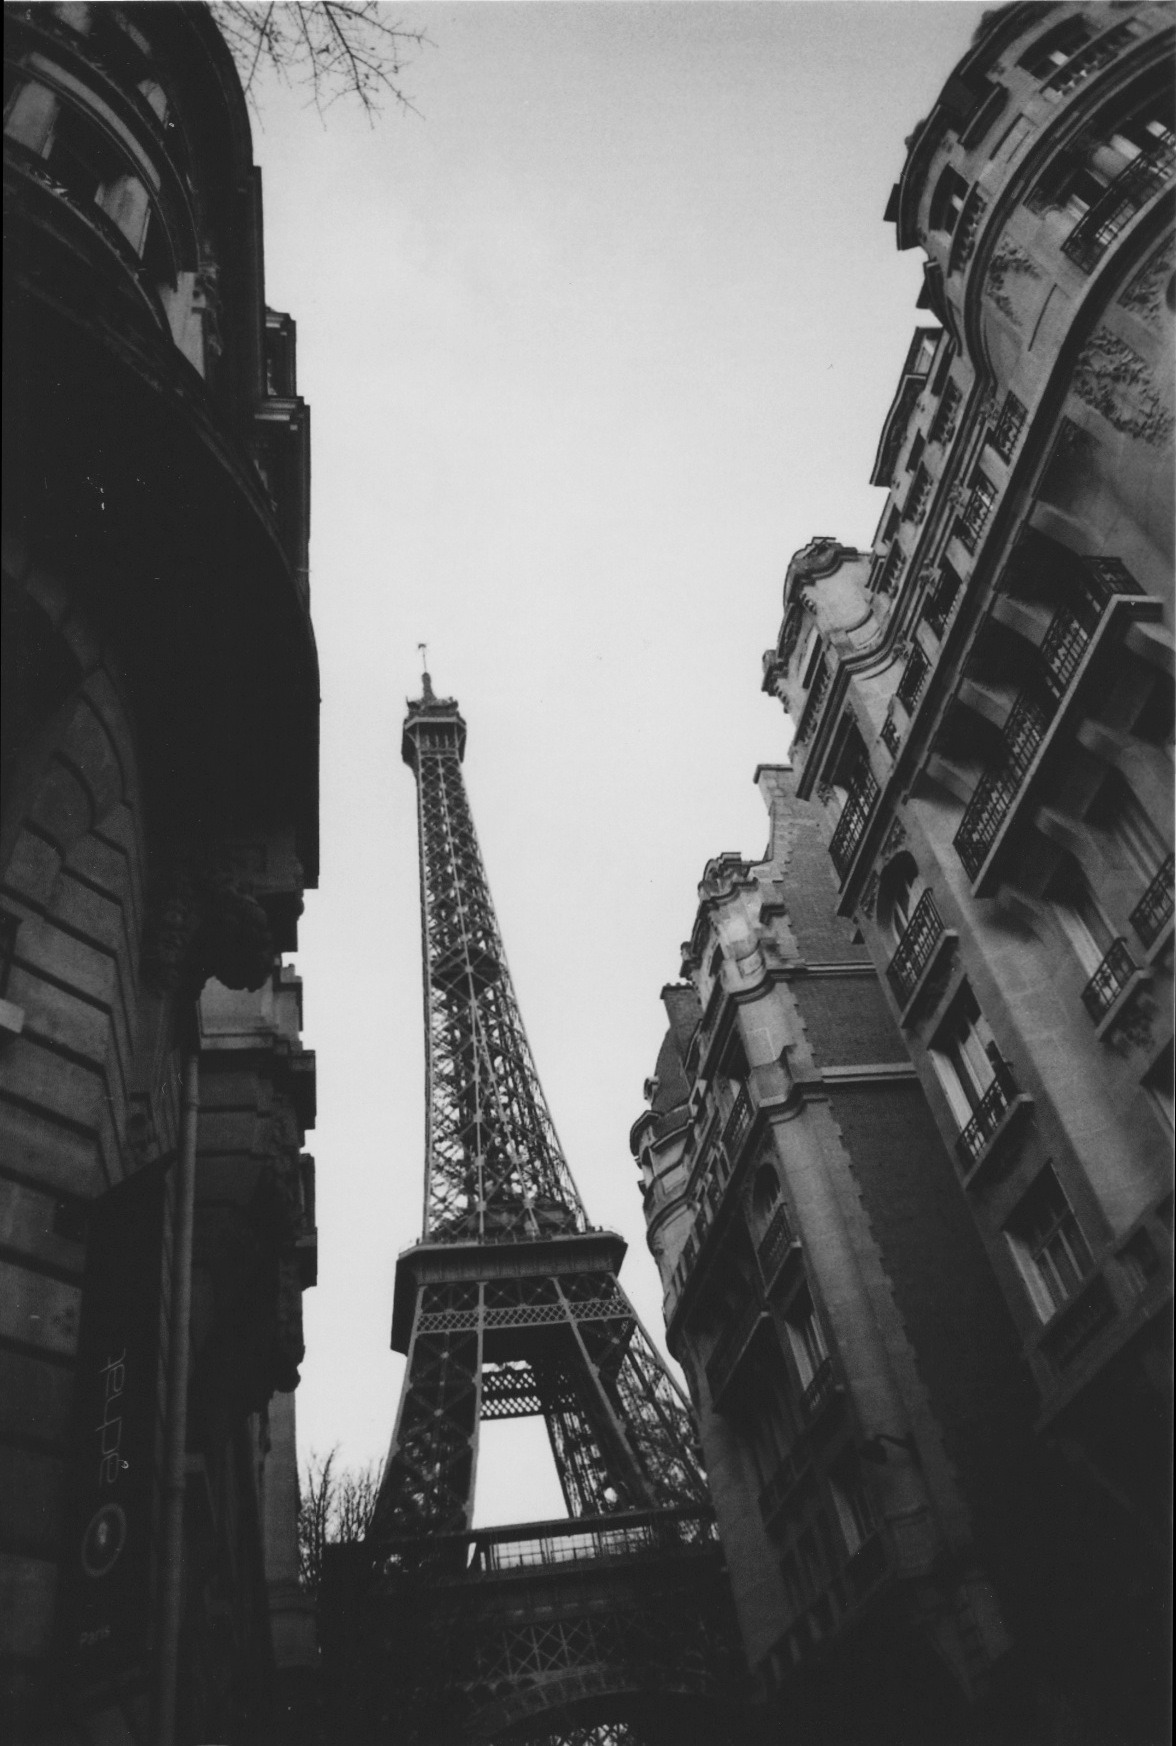 analogeliebe:  tour eiffel, 2013